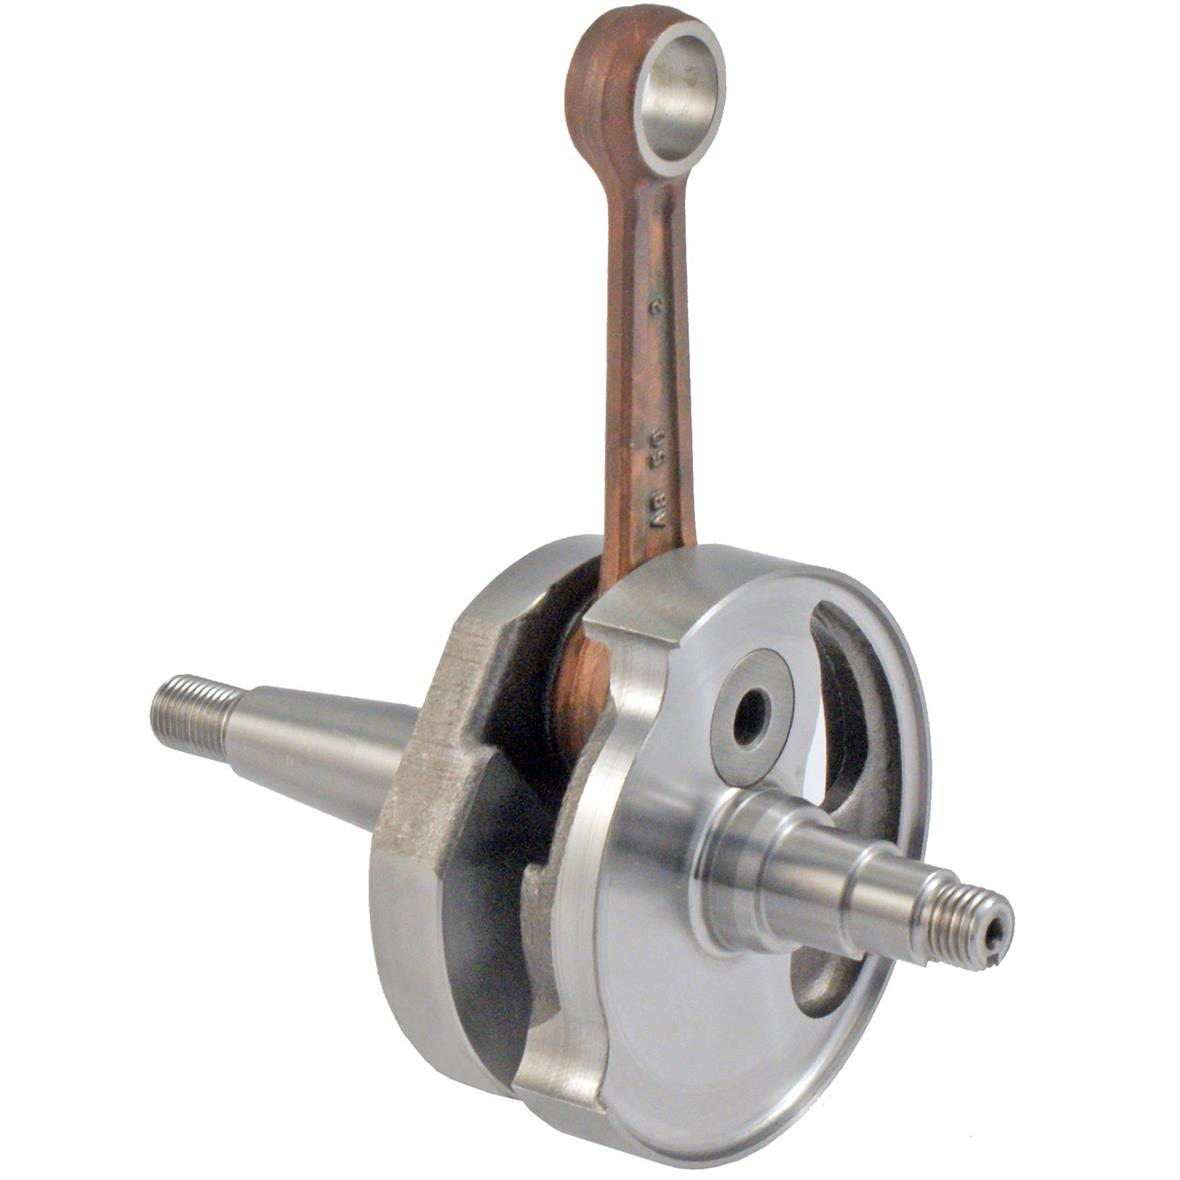 Product Image for 'Crankshaft RMSTitle'